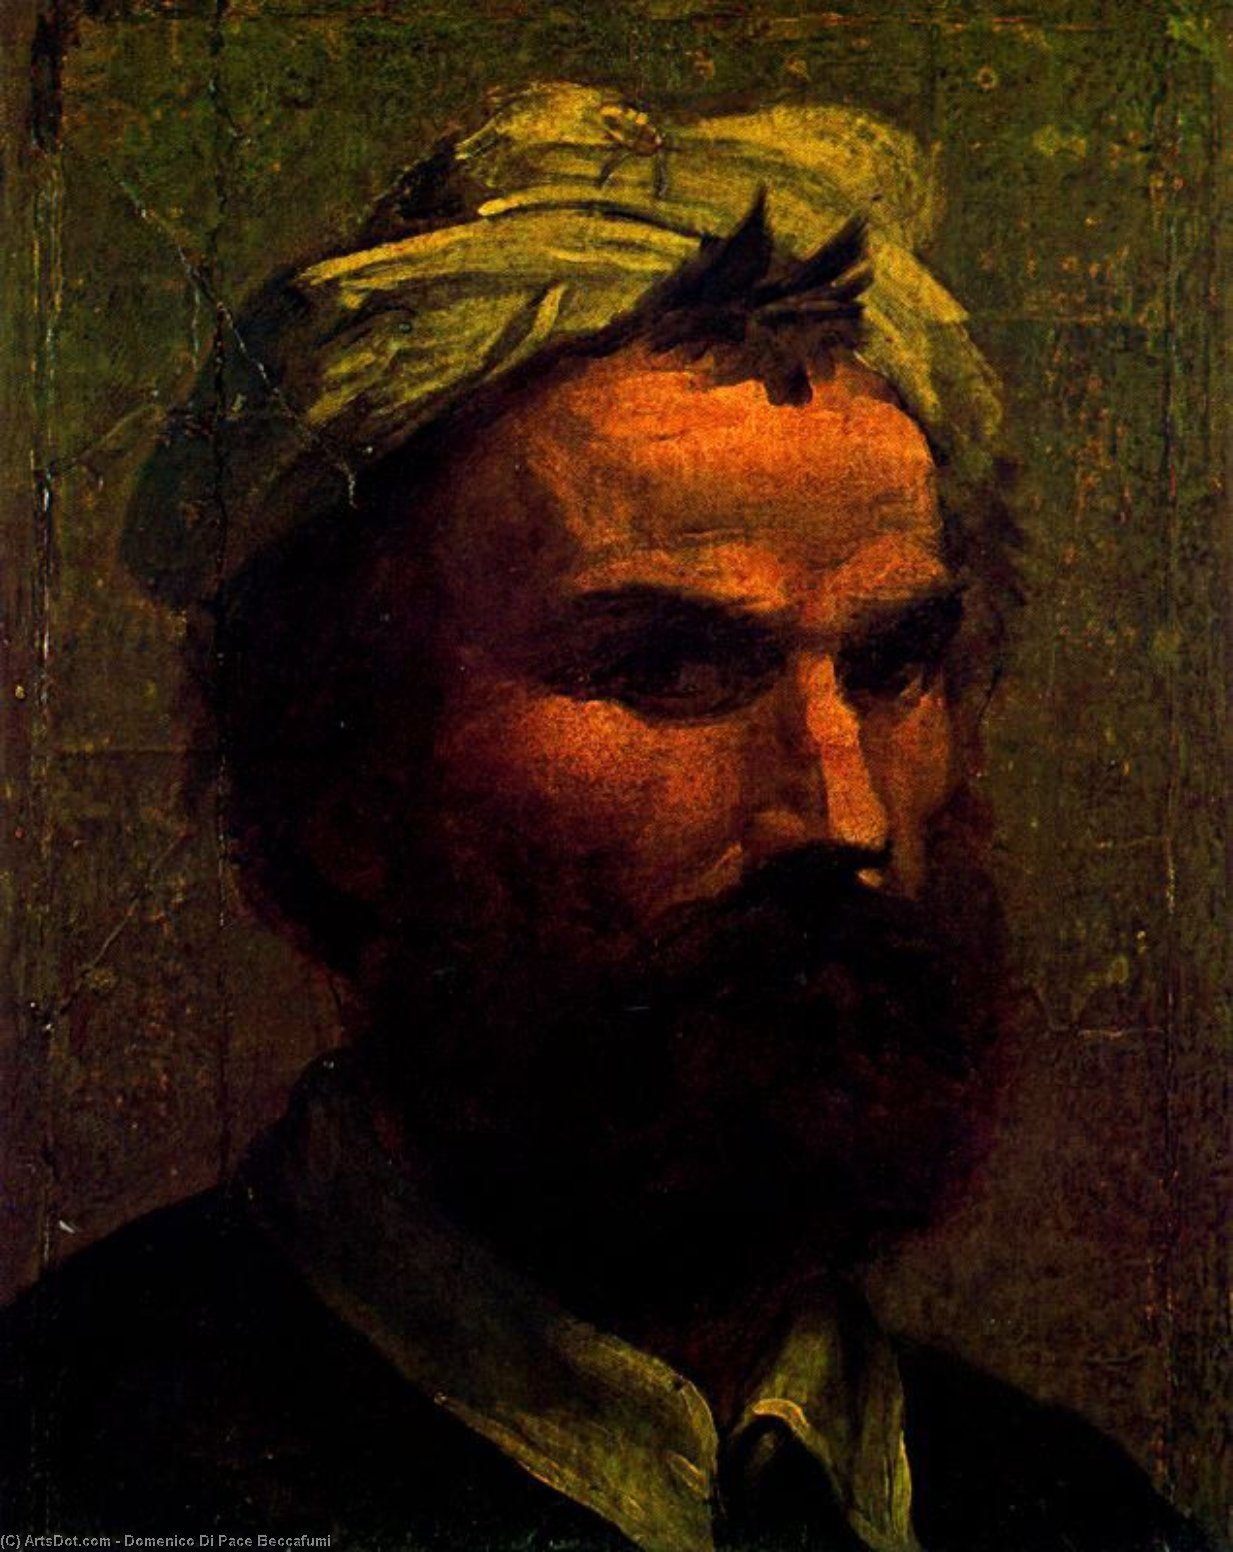 Self-portrait, Drawing by Domenico Di Pace Beccafumi (1486-1551, Italy)